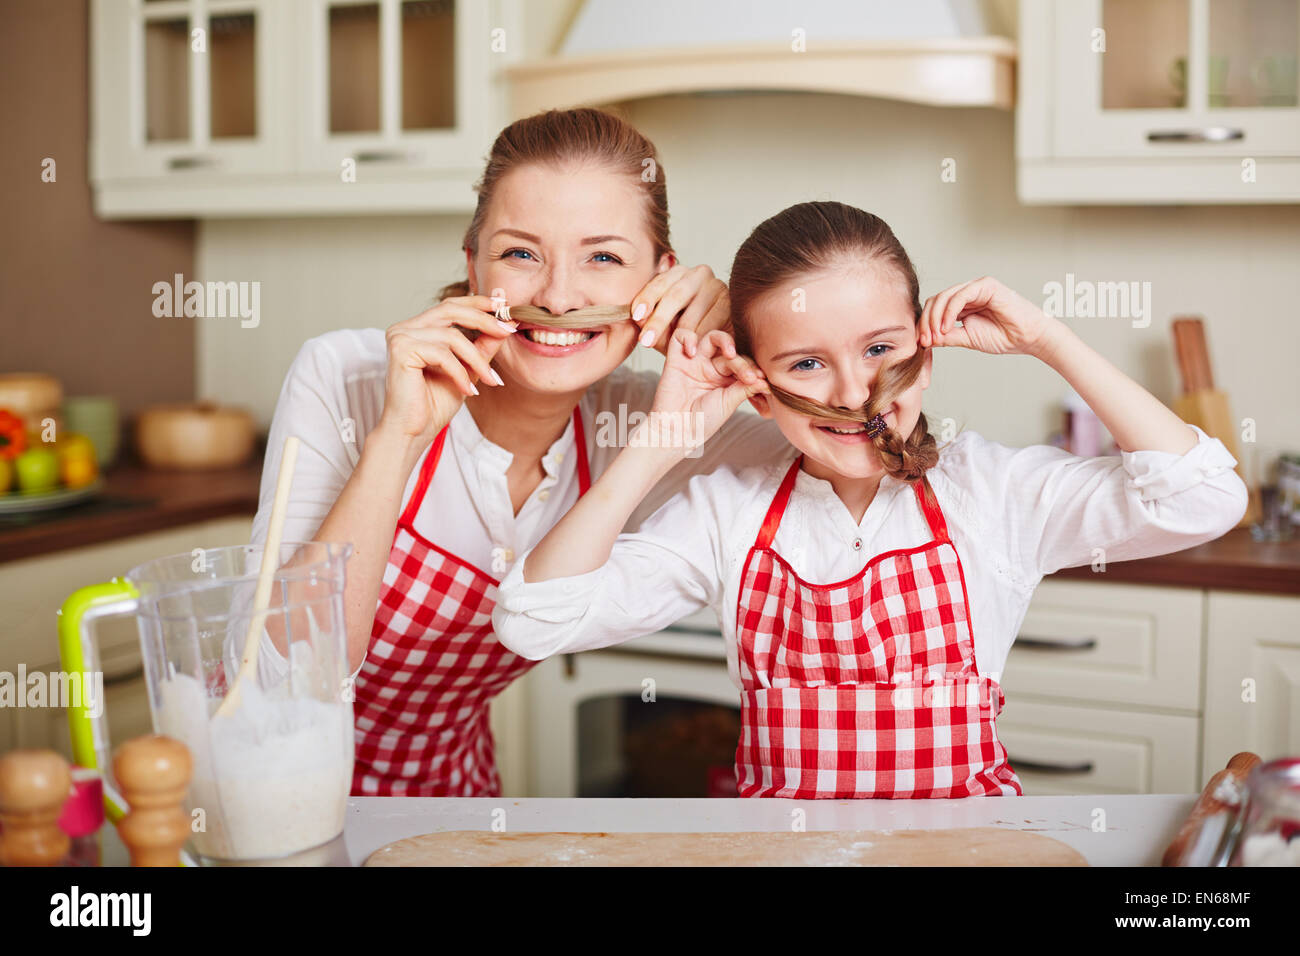 Ecstatic girl and her mother in aprons keeping ends of their pigtails by noses - Stock Image